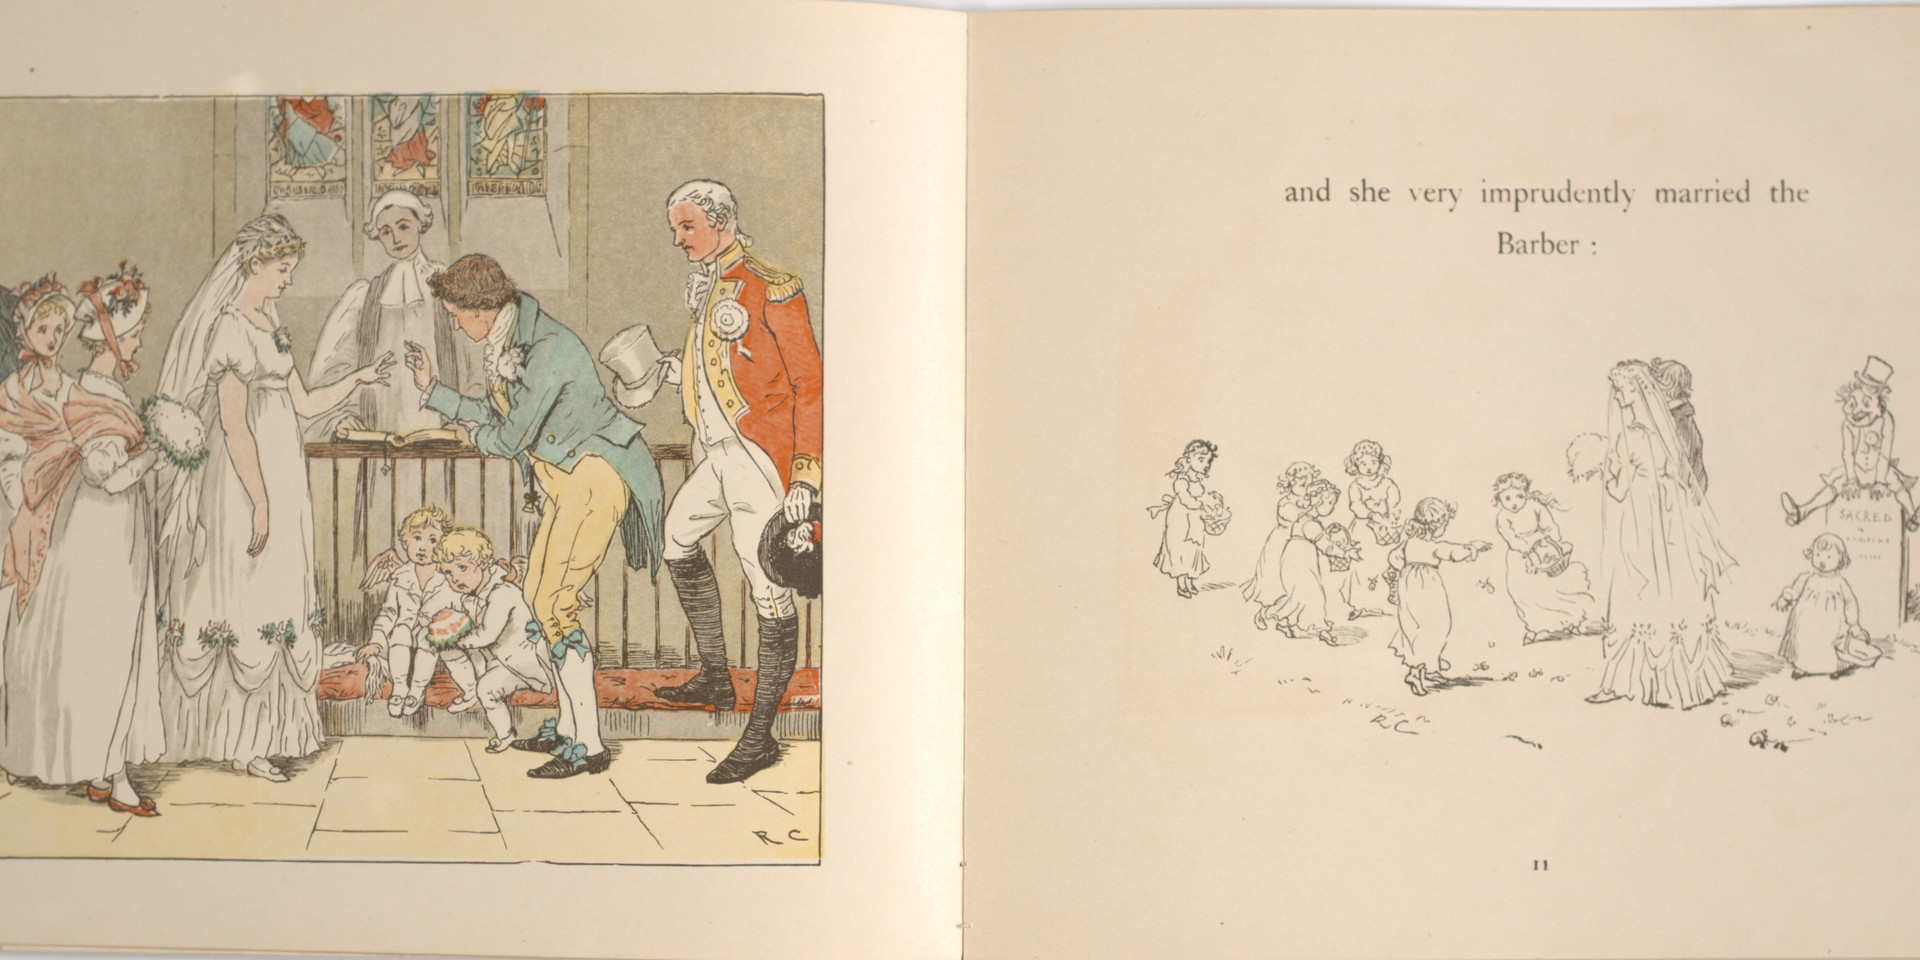 Caldecott, Randolph. The Great Panjandrum Himself. Frederick Warne & Co., 1855. p.7-8. Ryerson University Library and Archives.